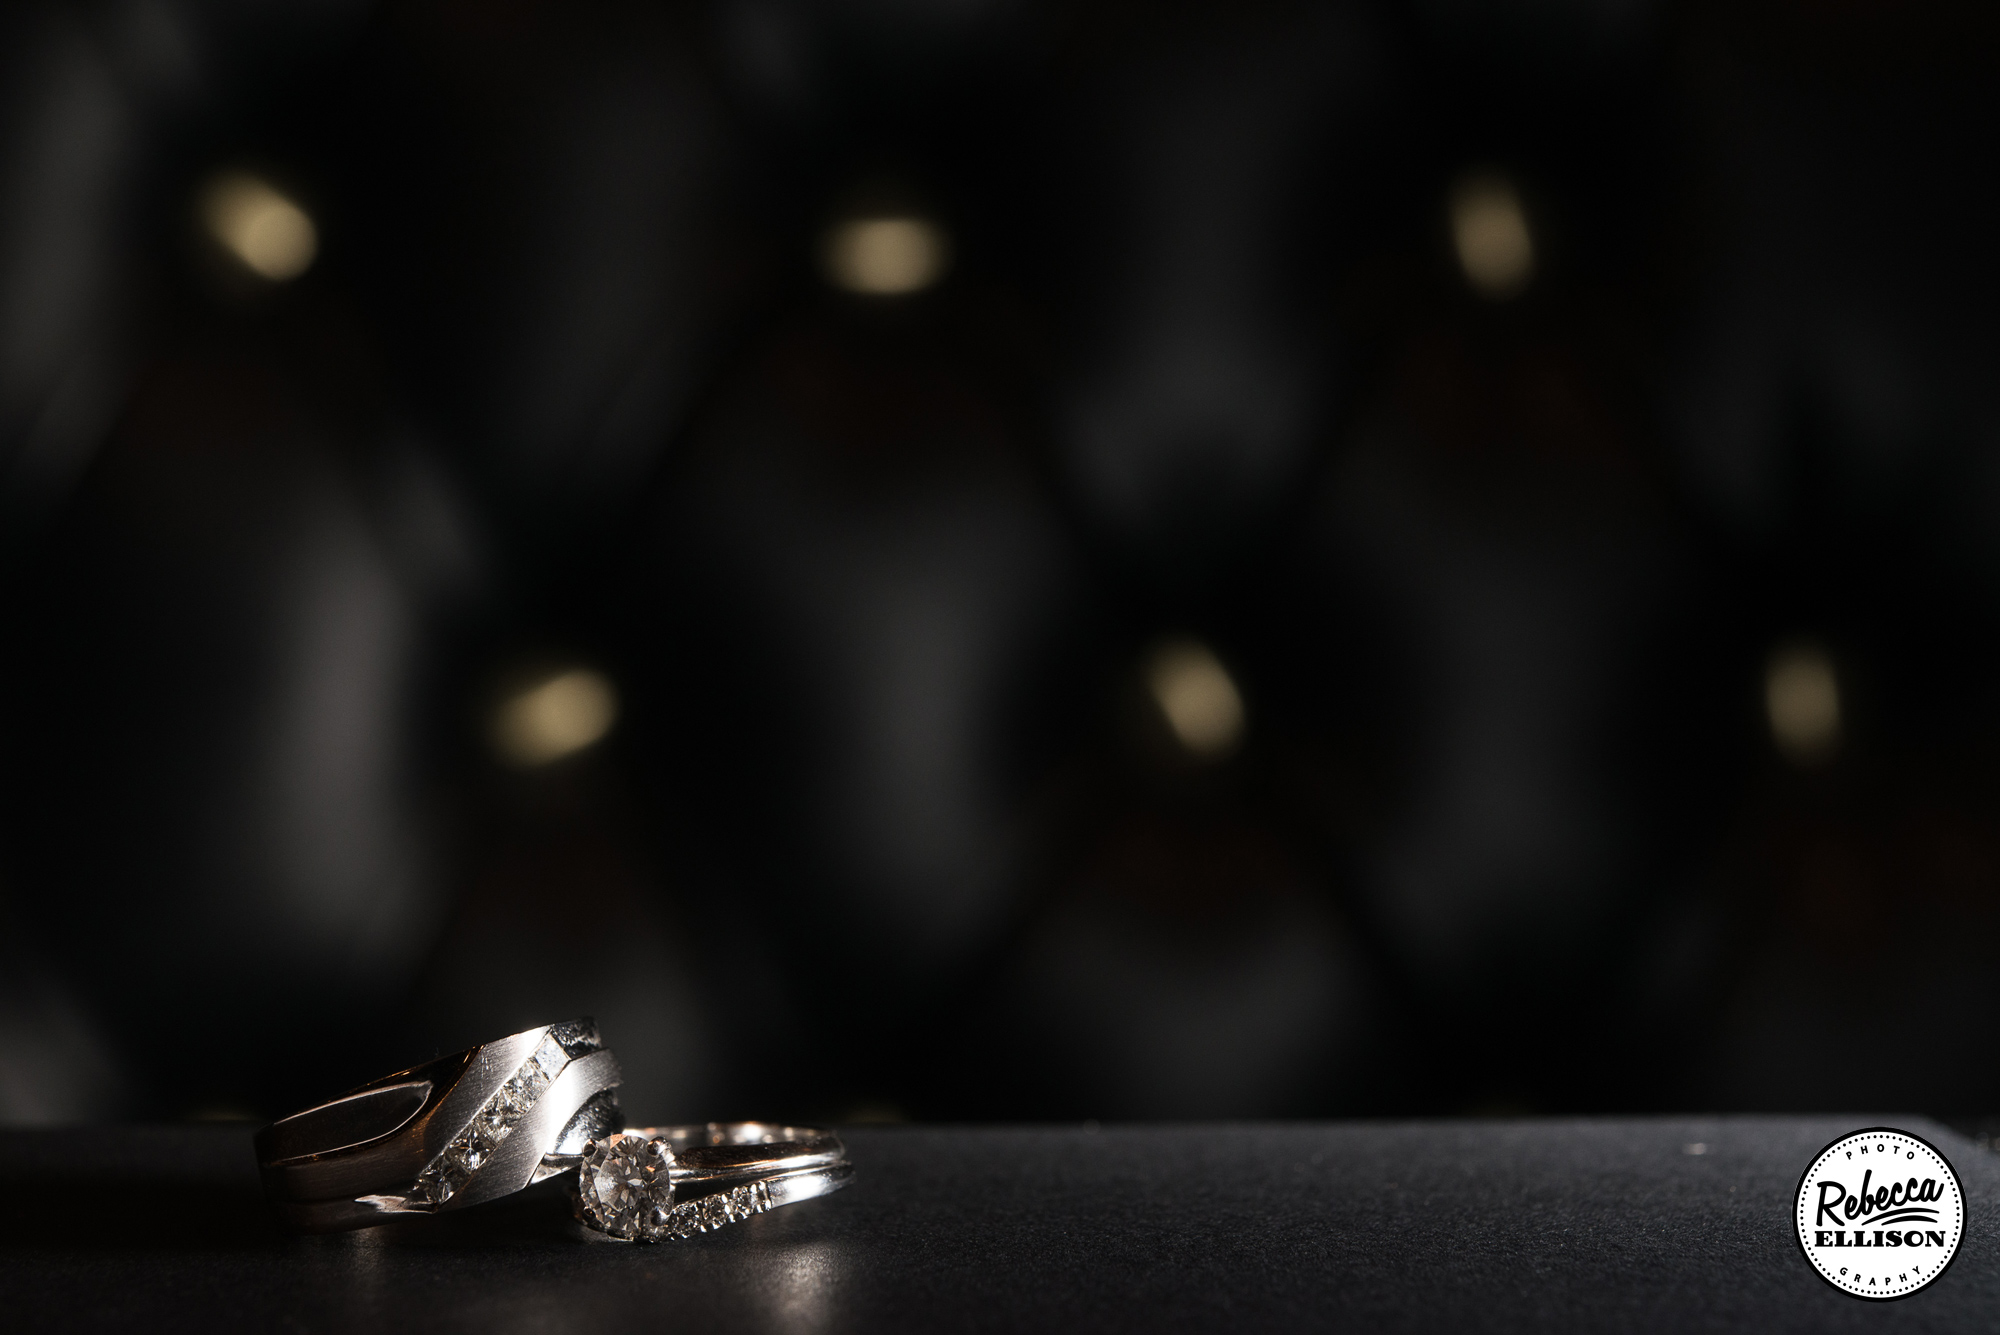 Wedding rings against a black leather background photography by Rebecca Ellison